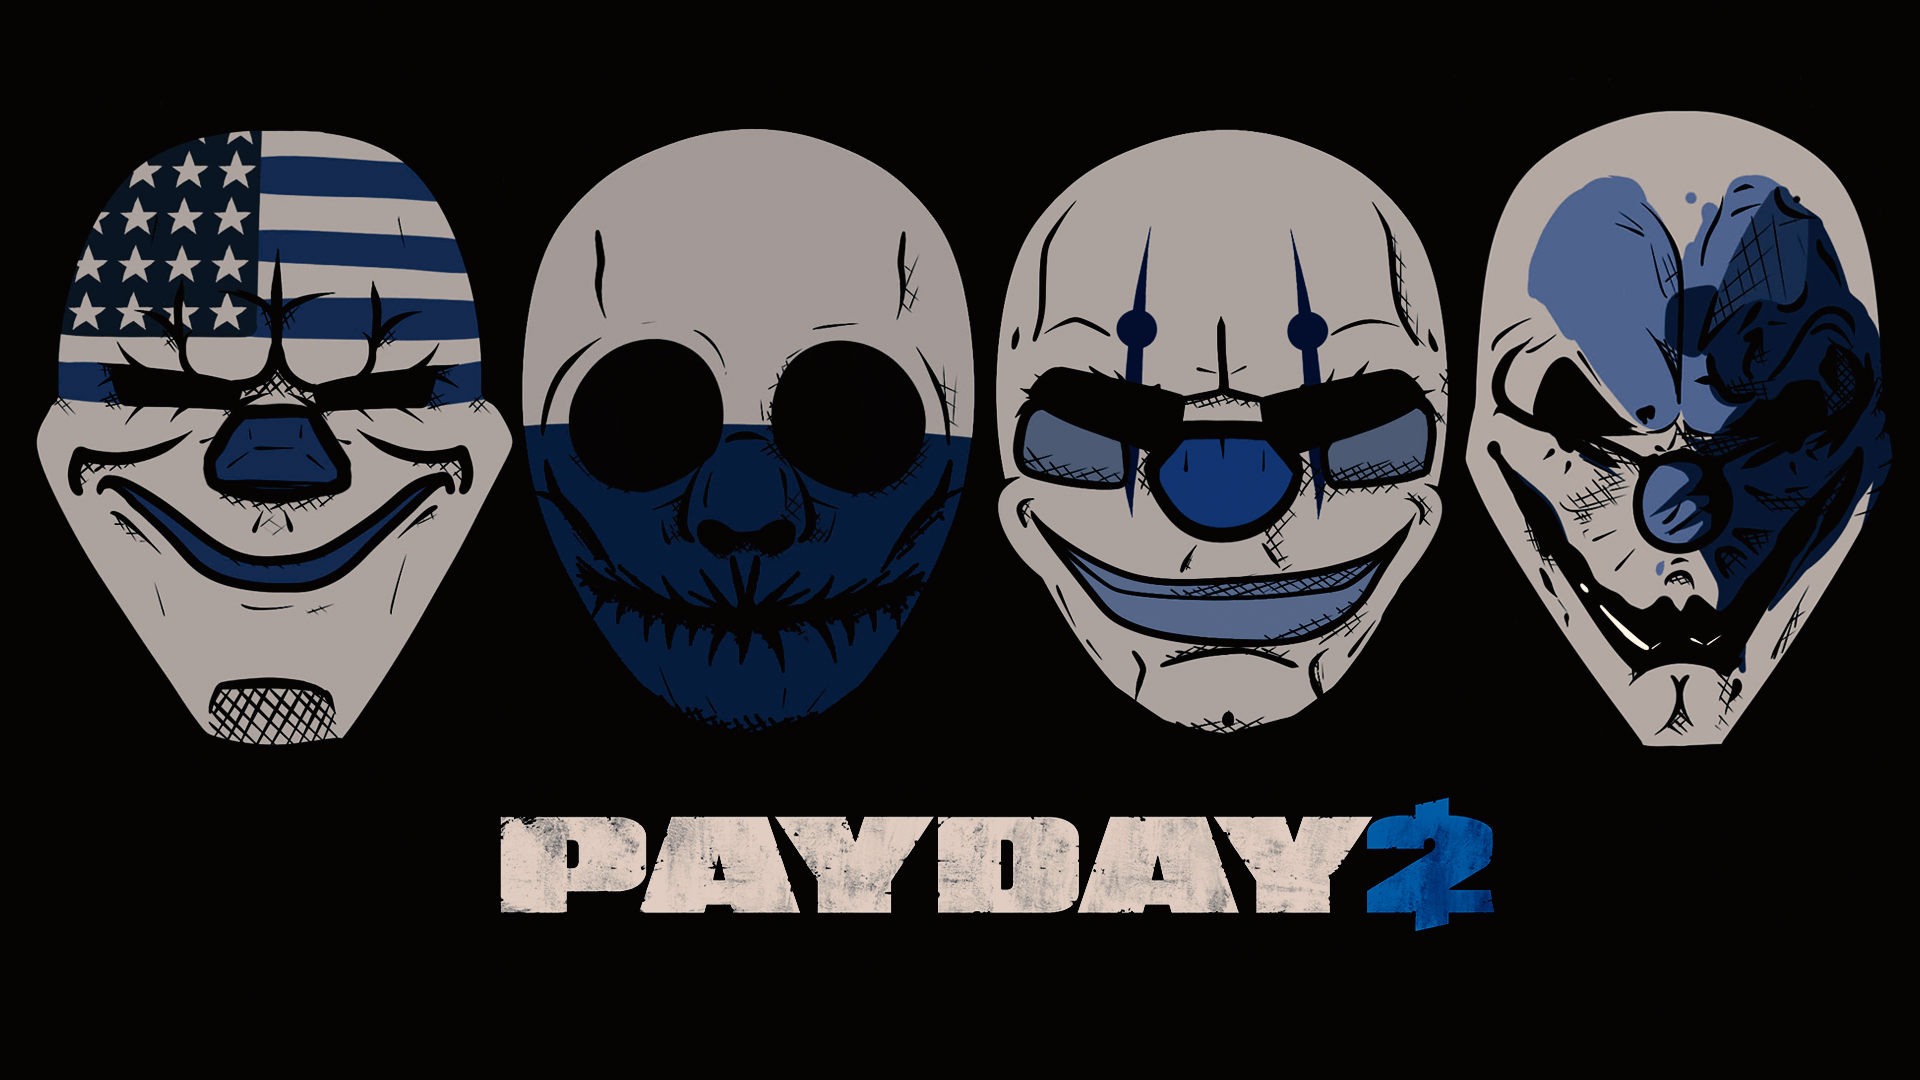 Payday 2 Wallpapers Top Free Payday 2 Backgrounds